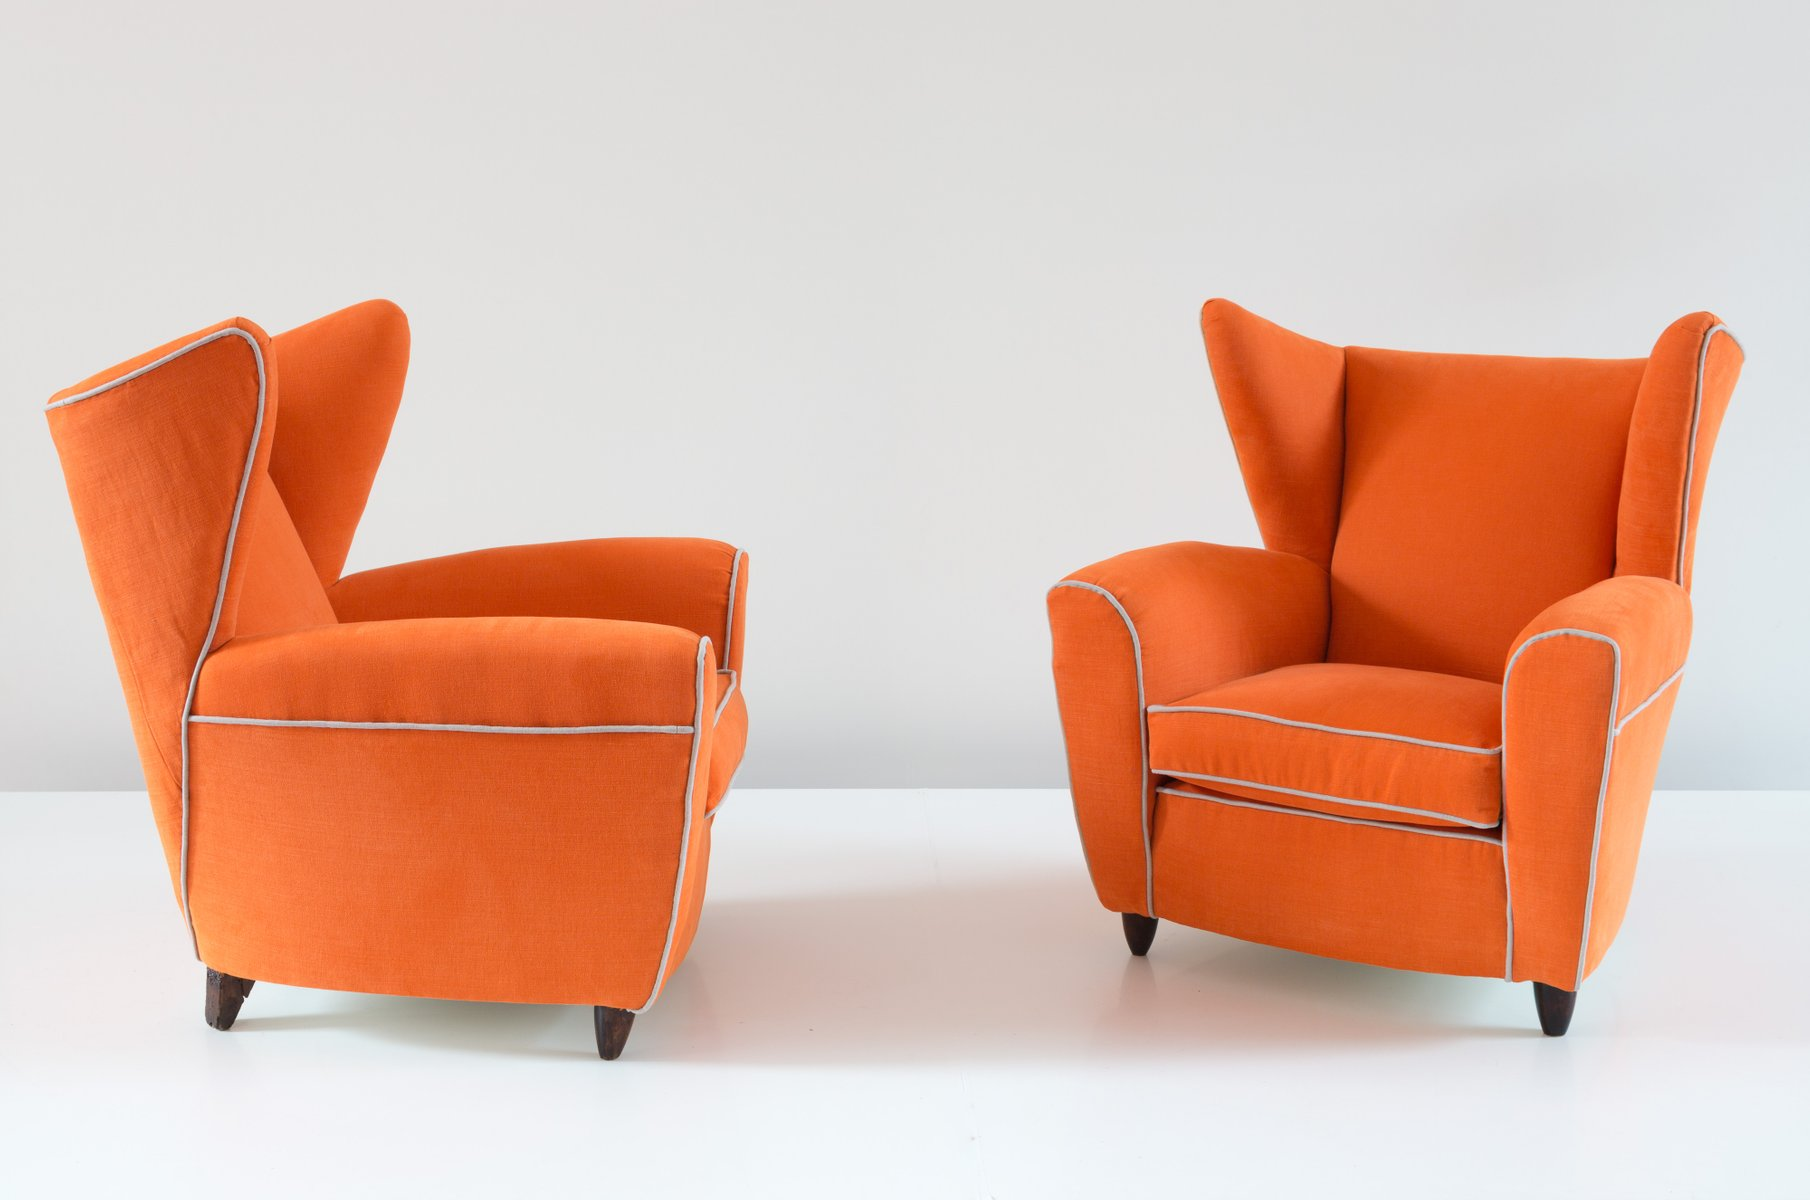 Orange Wingback Armchairs by Melchiorre Bega Set of 2 for sale at